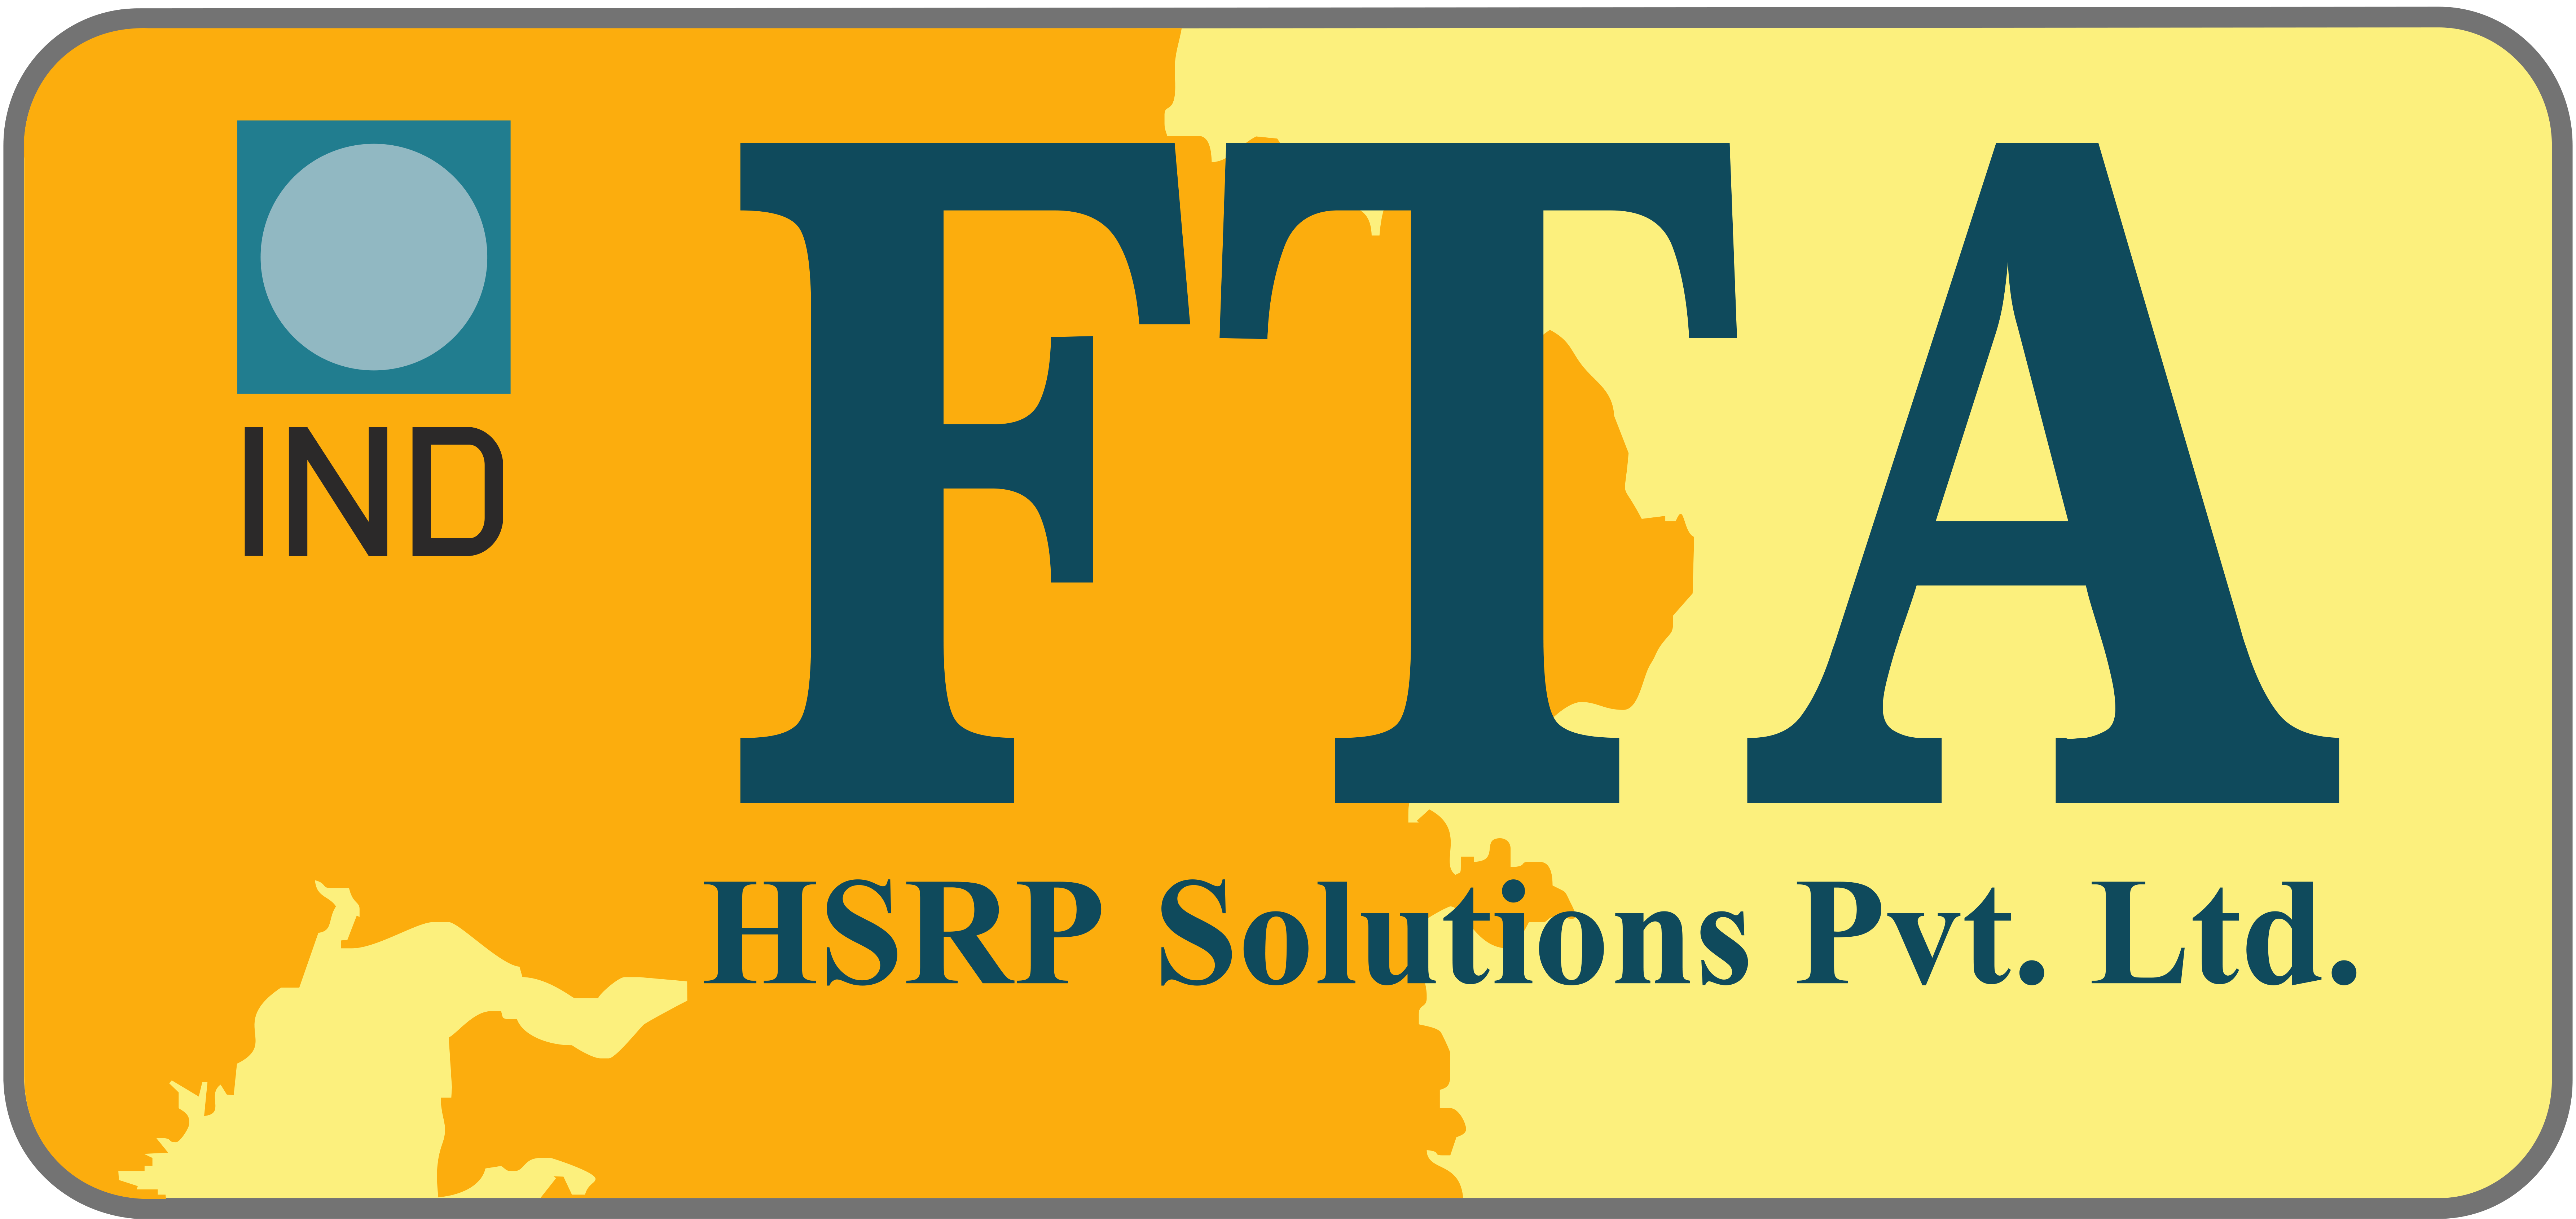 FTA HSRP Solutions Pvt Ltd